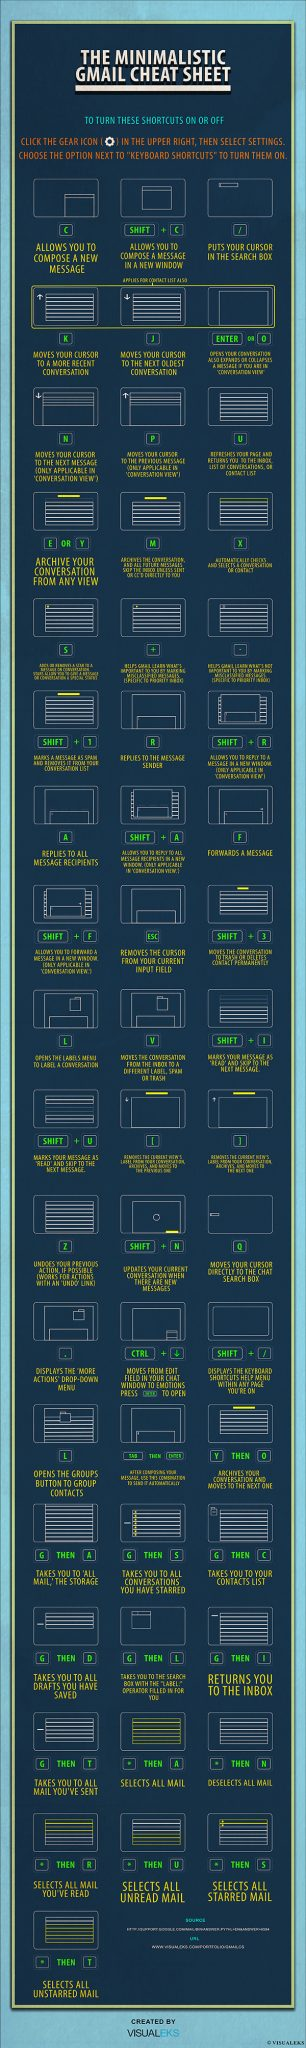 Gmail-cheat-sheet-infographic